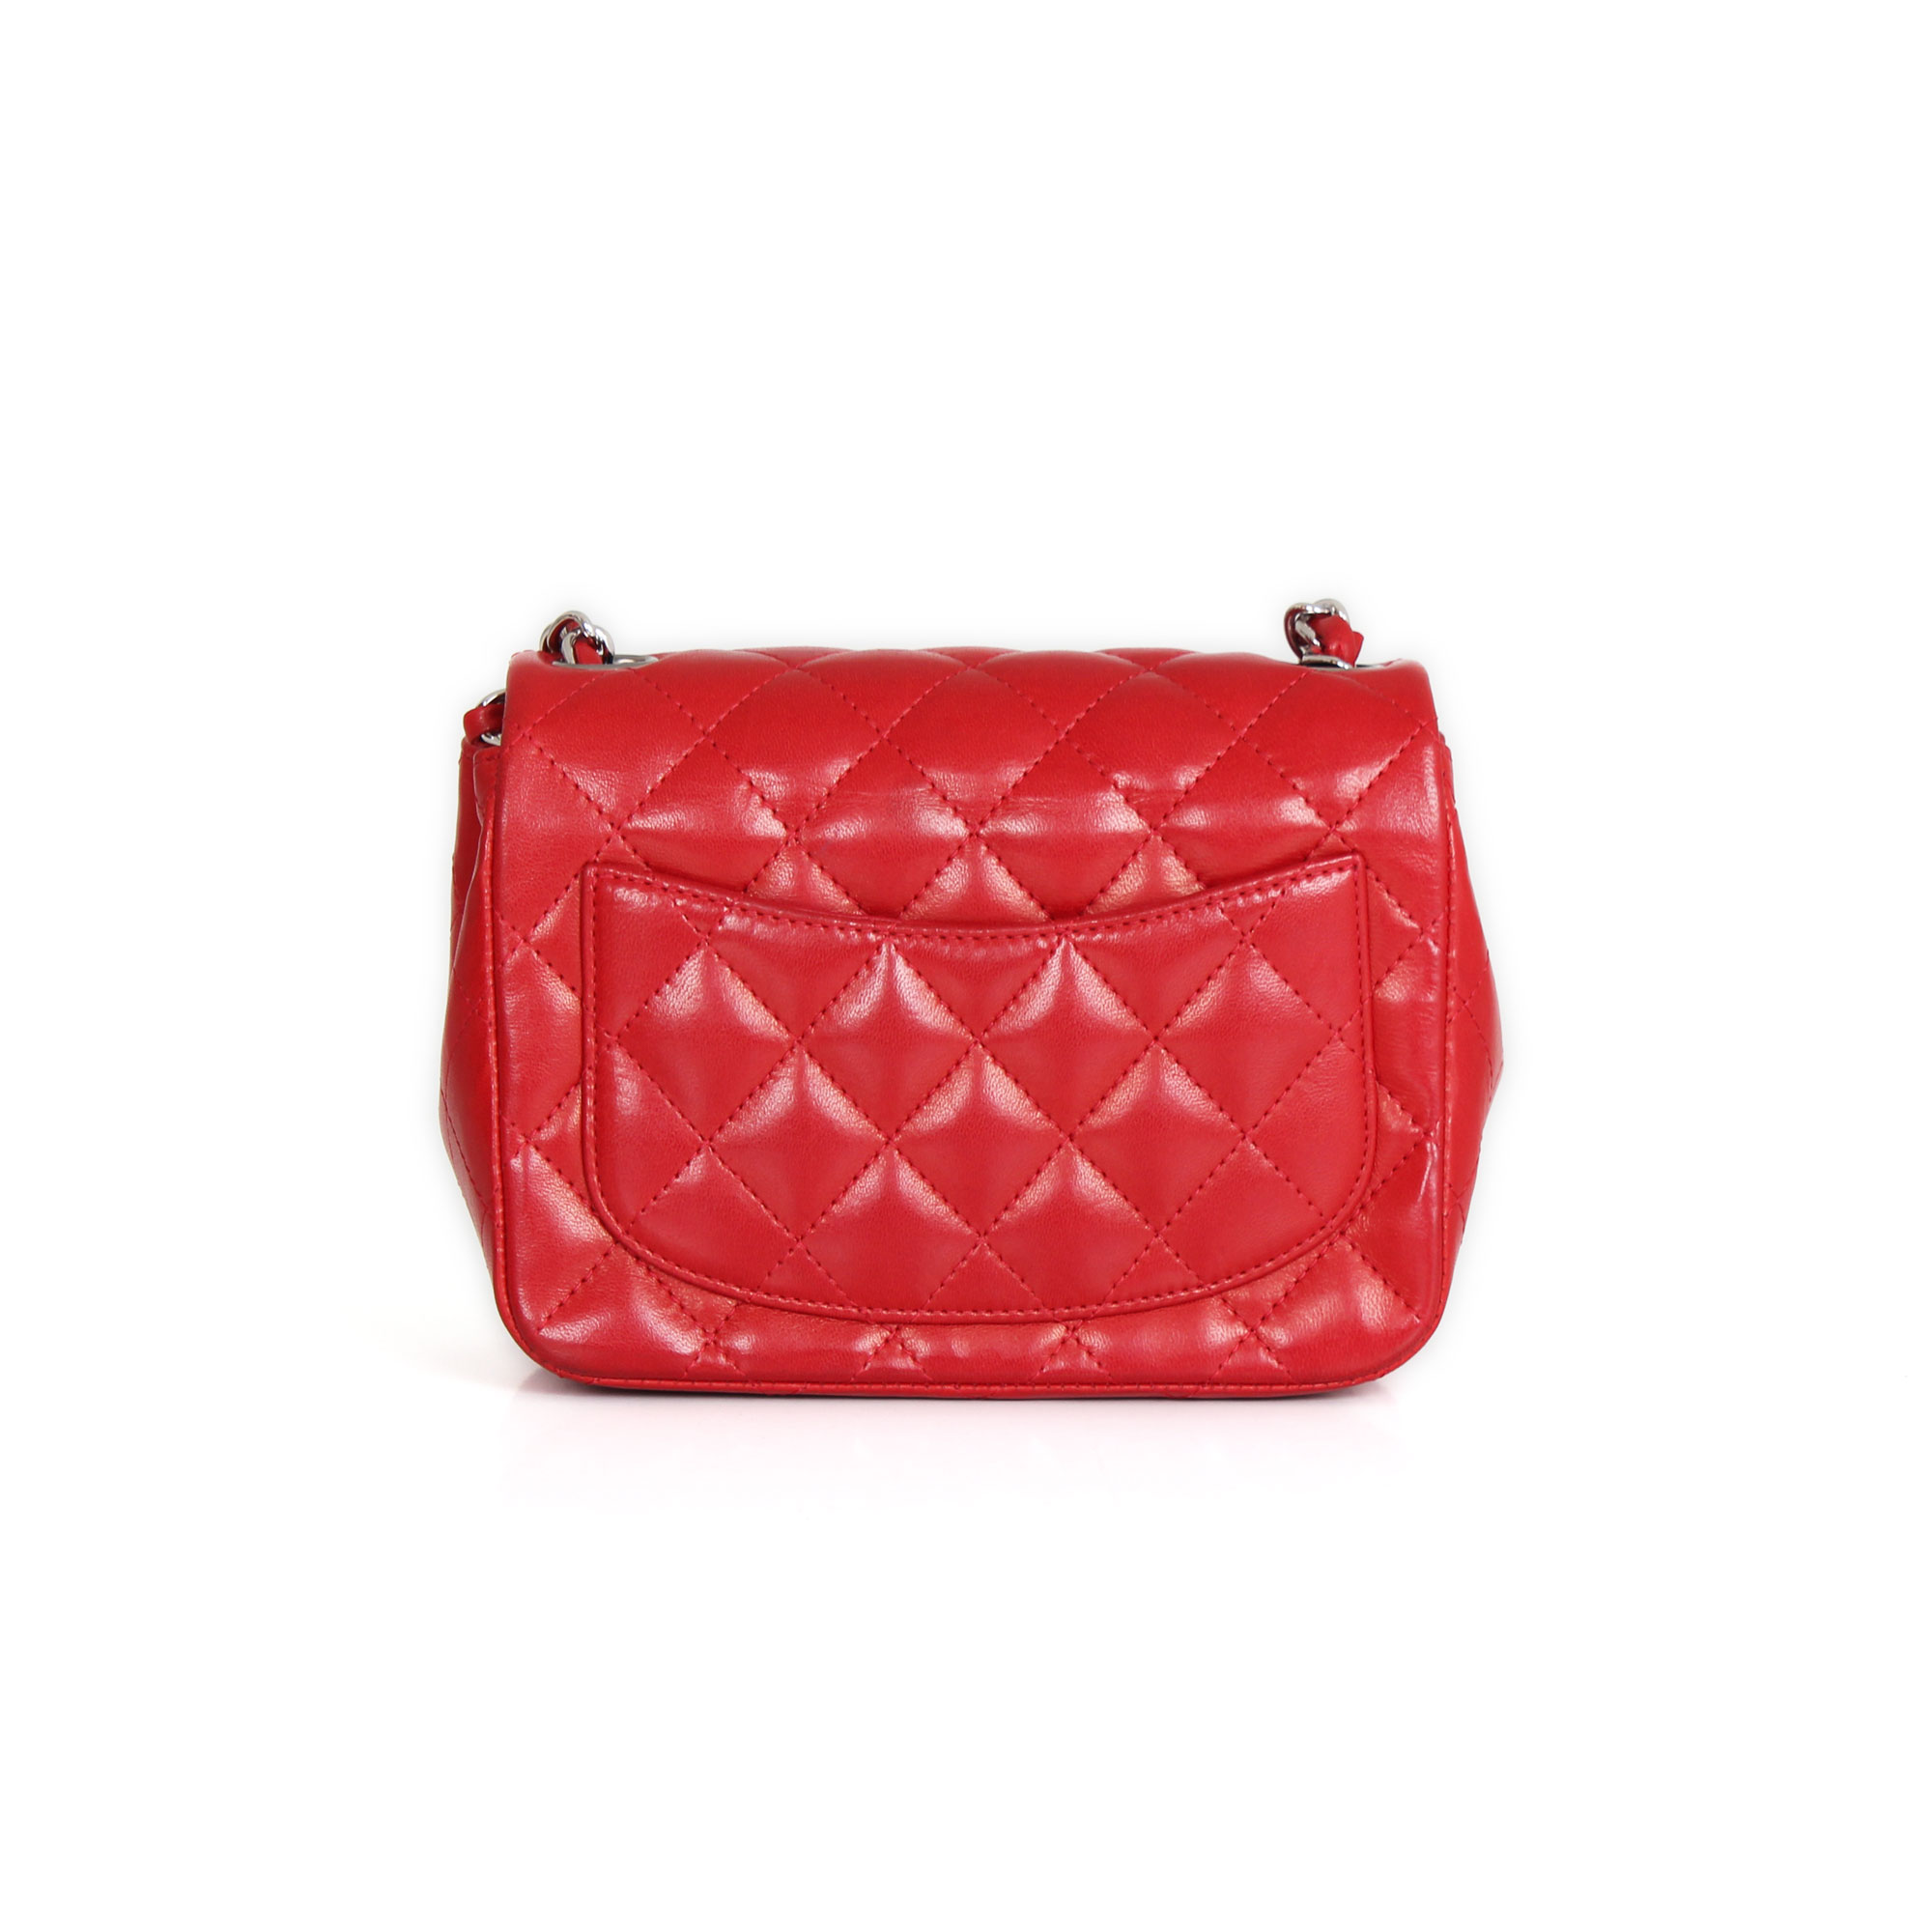 23109f1b74e525 Chanel Timeless Mini Square Red lambskin leather | CBL Bags